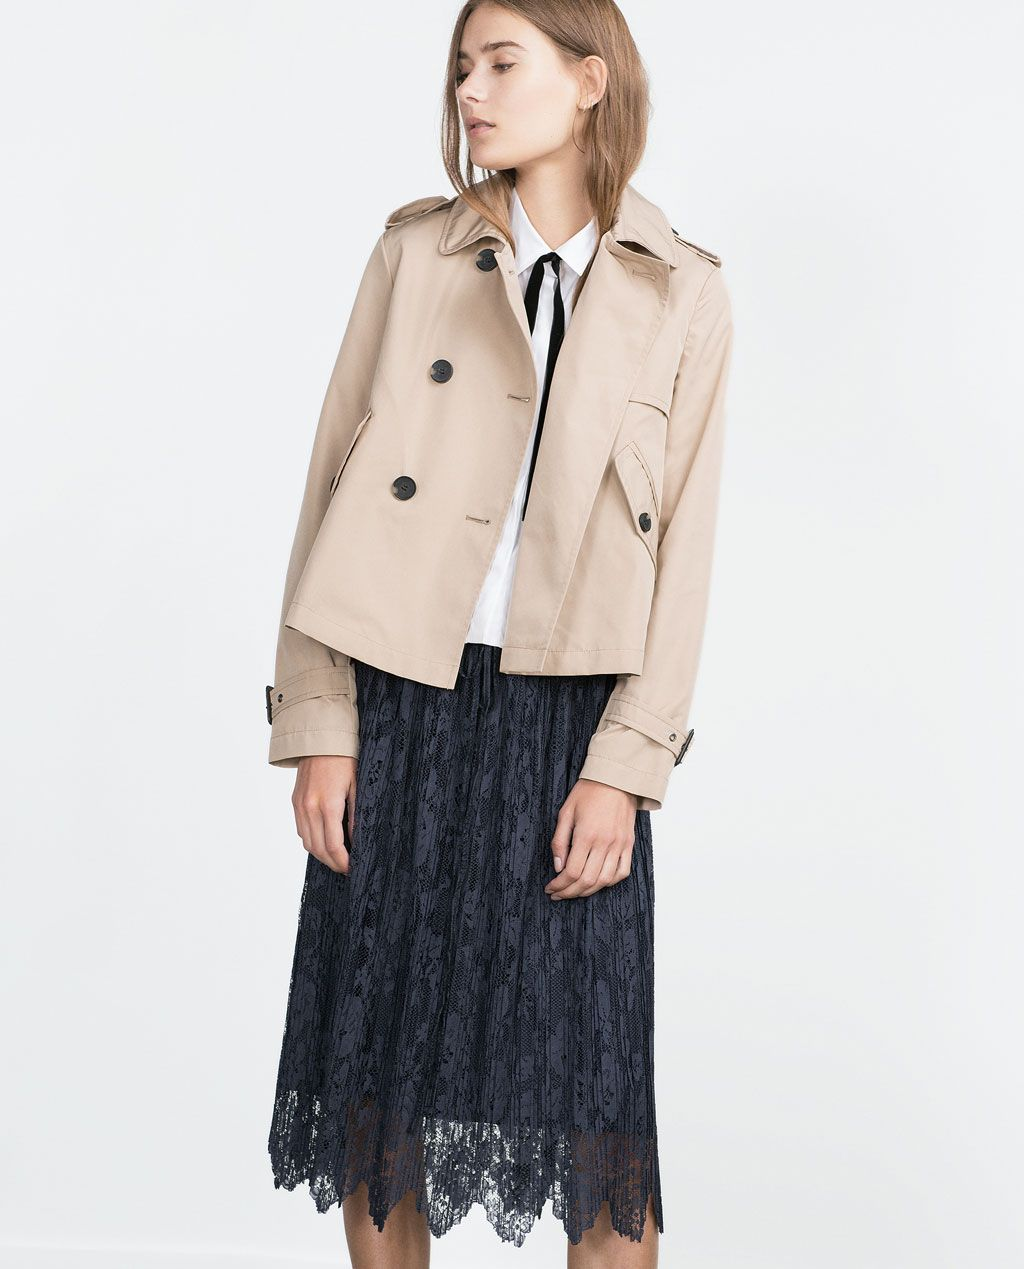 SHORT TRENCH COAT-View all-Outerwear-WOMAN | ZARA Malaysia